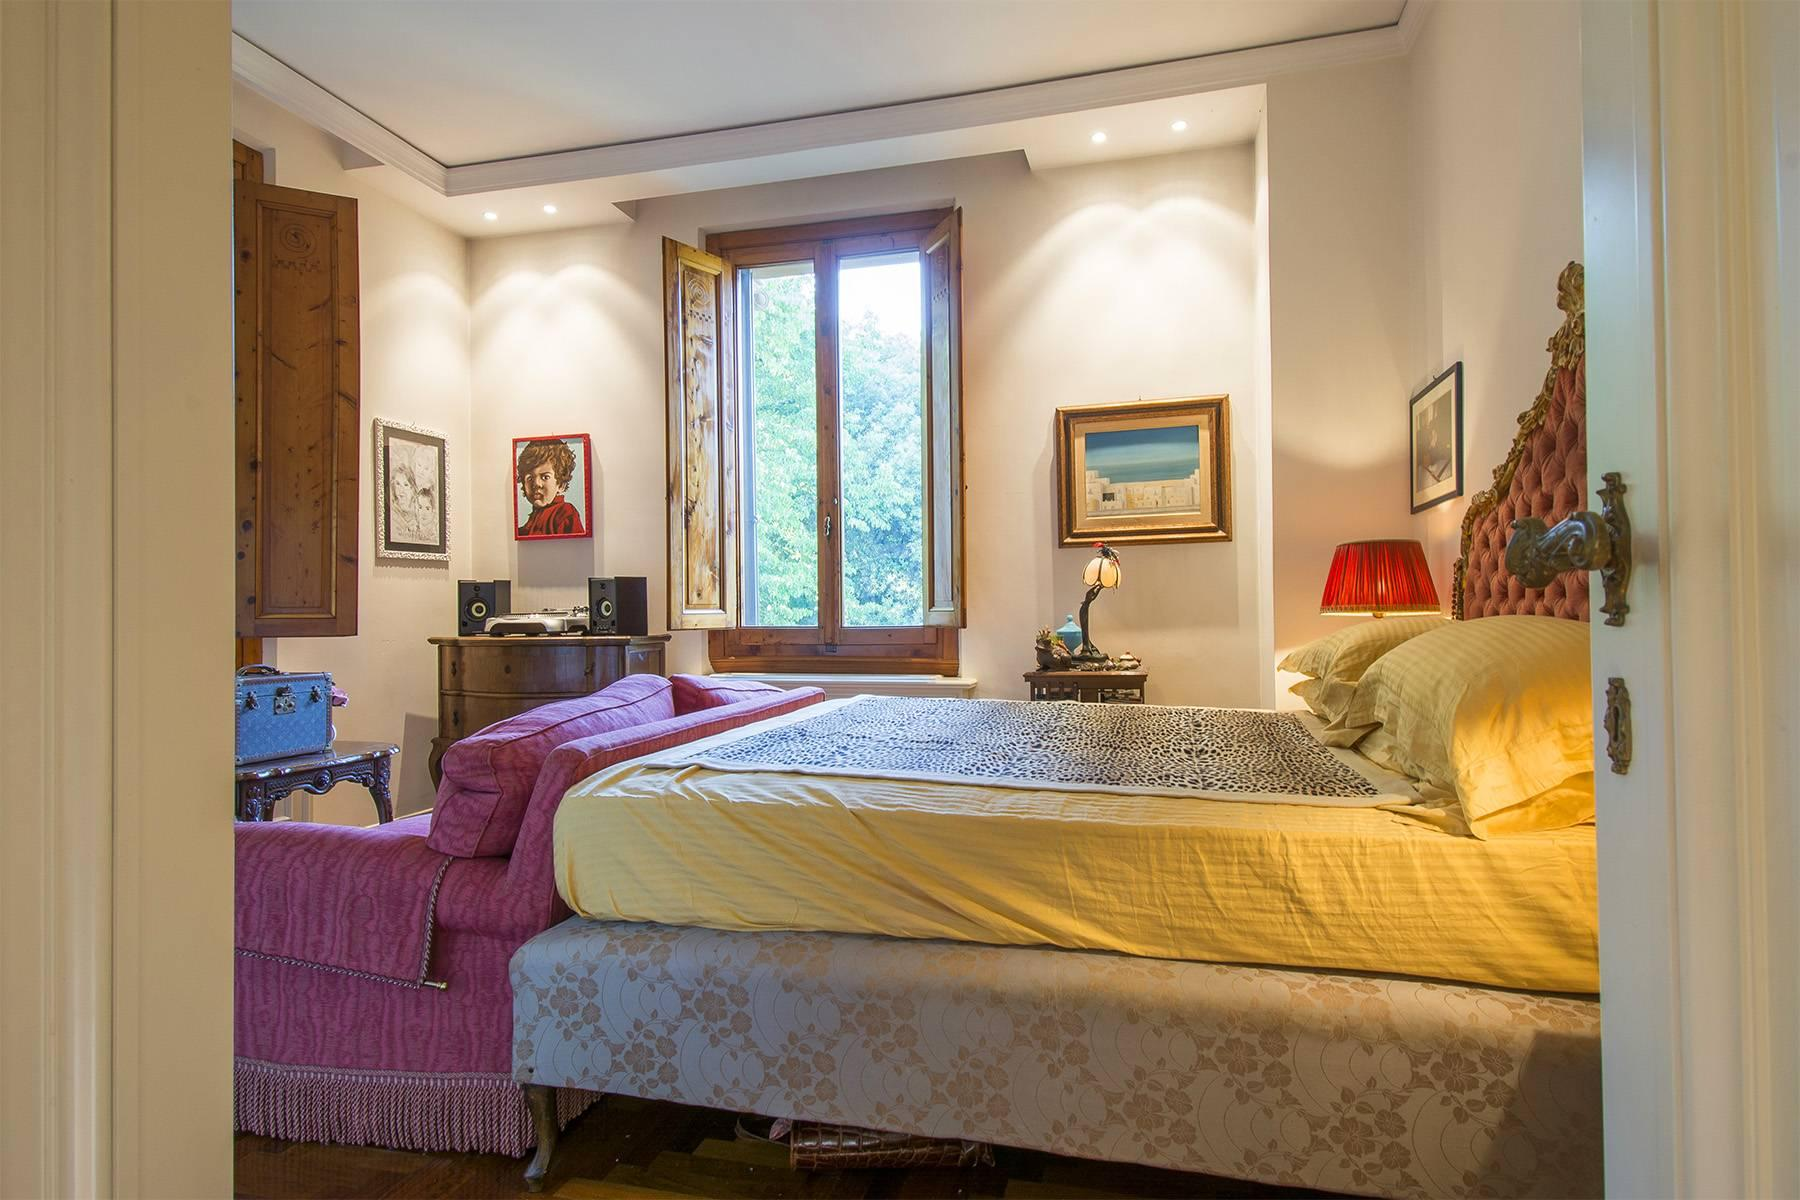 Luxury Art Nouveau Villa in the heart of Montecatini Terme - 17